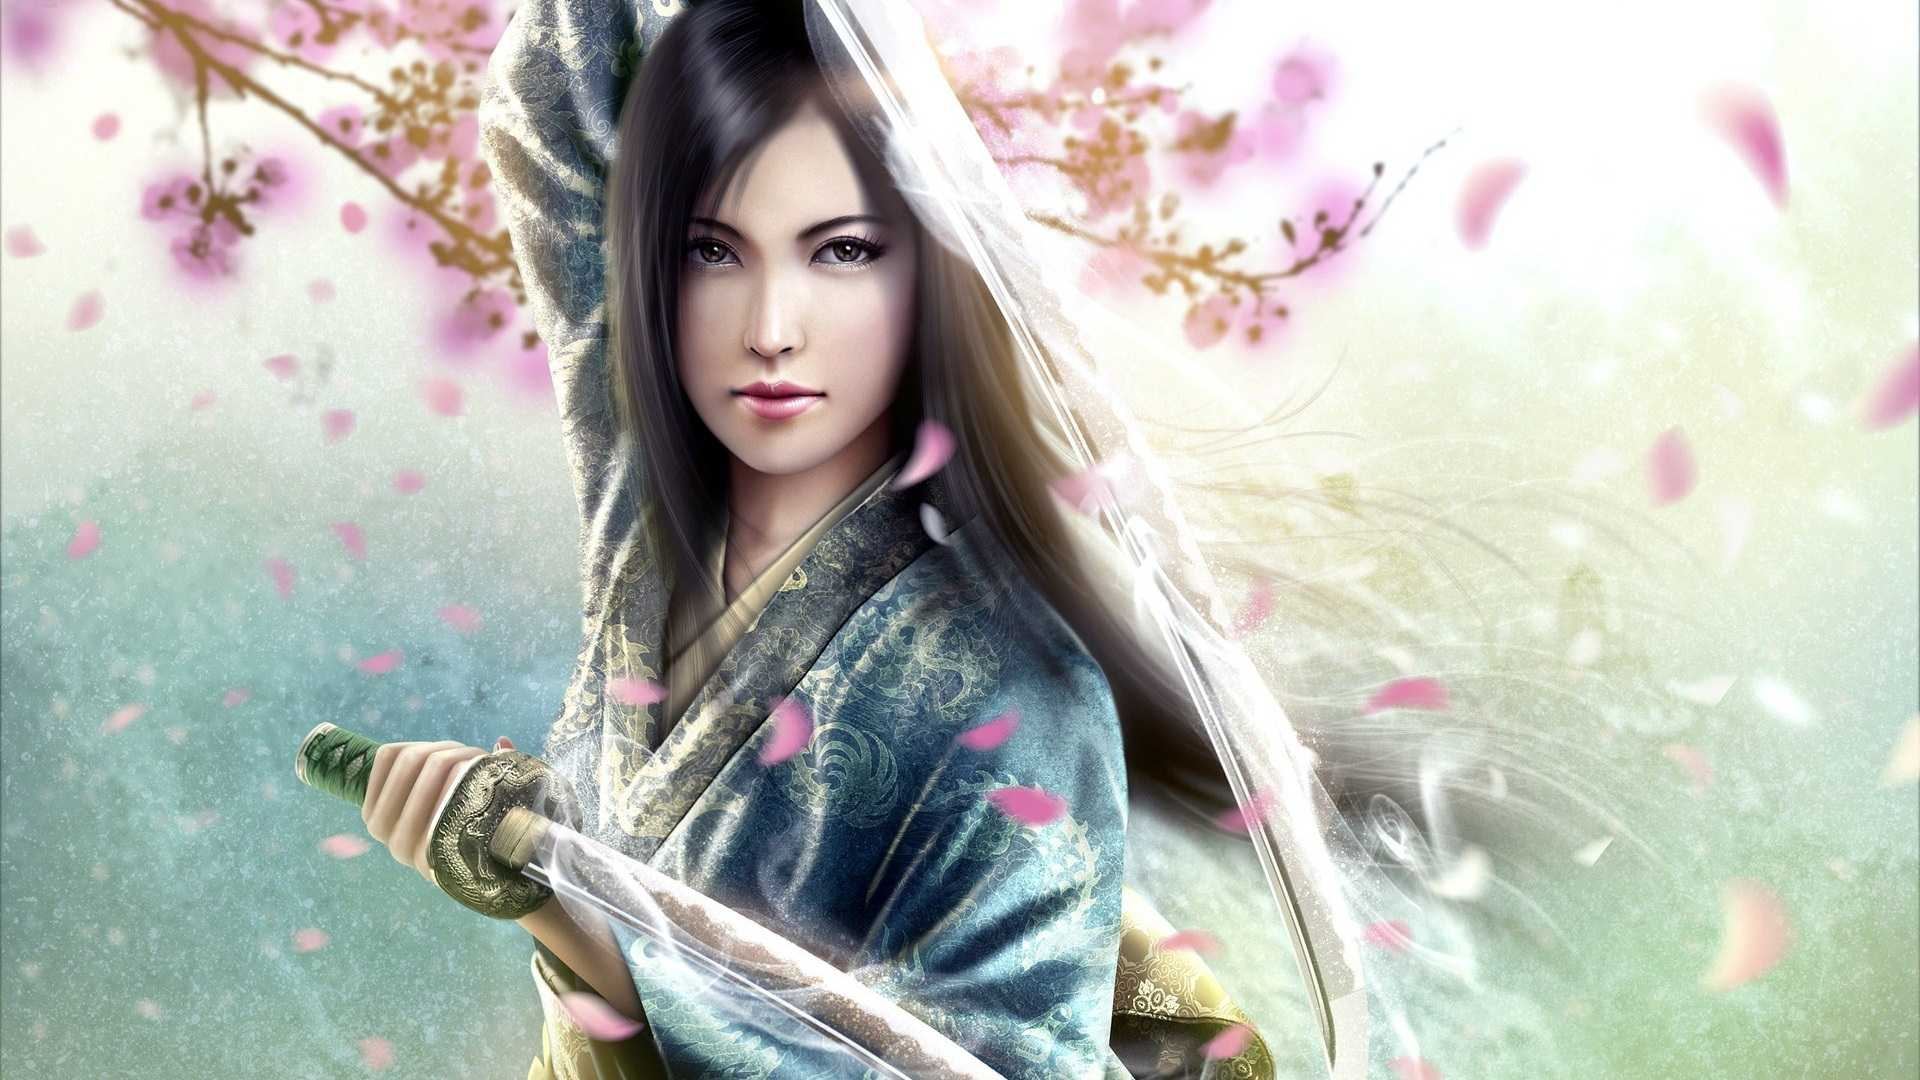 samurai-girl-female-warrior-wallpaper-hd-2.jpg